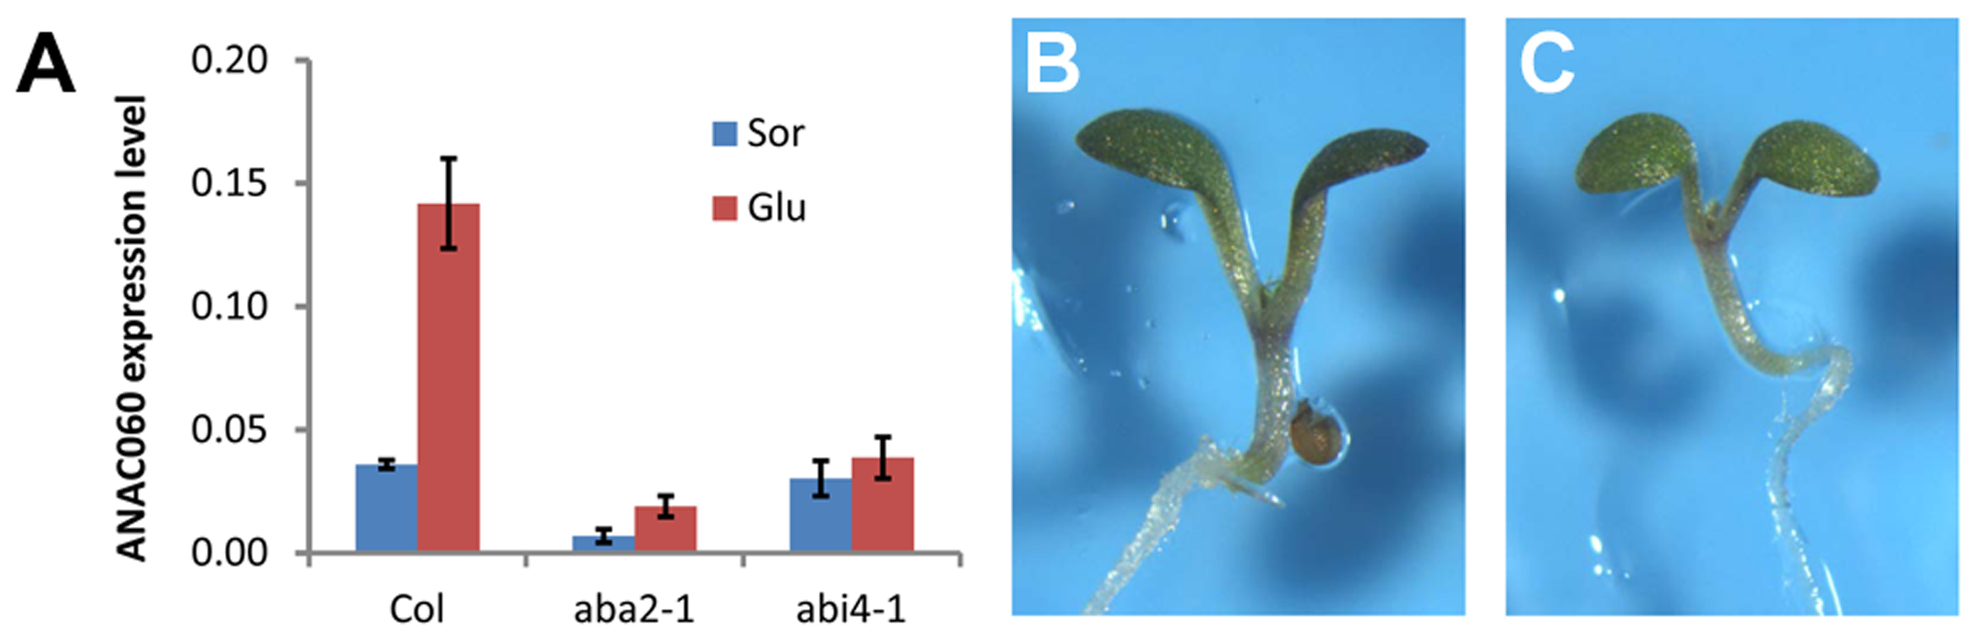 Glc induction of <i>ANAC060</i> requires ABA signaling.